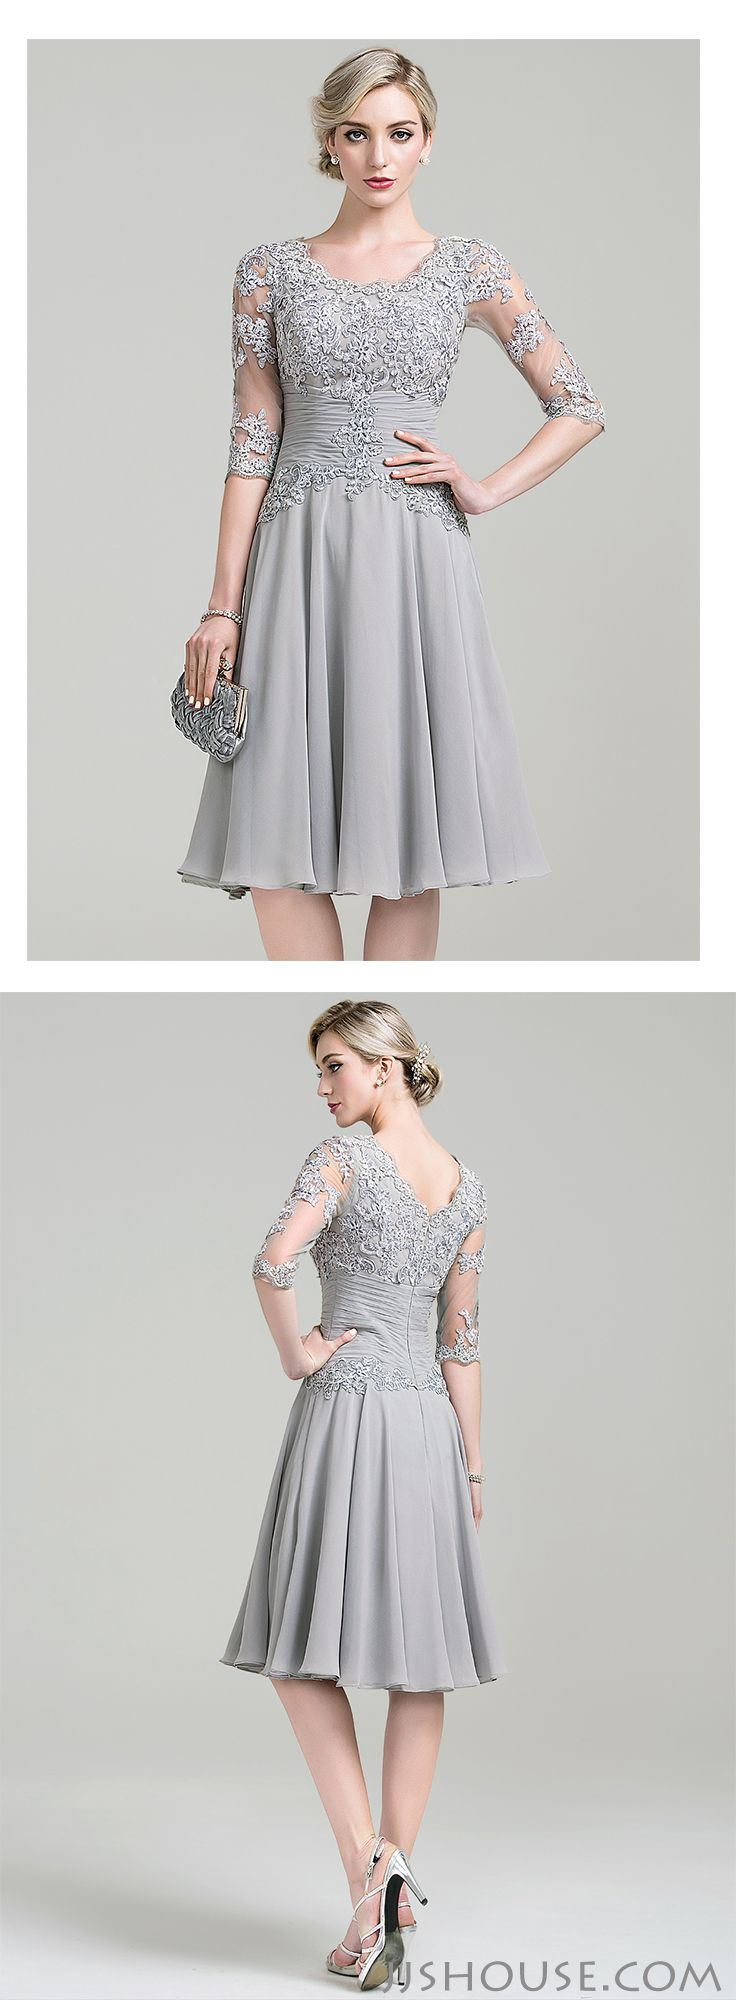 17 Best Images About Silver Anniversary Dresses On